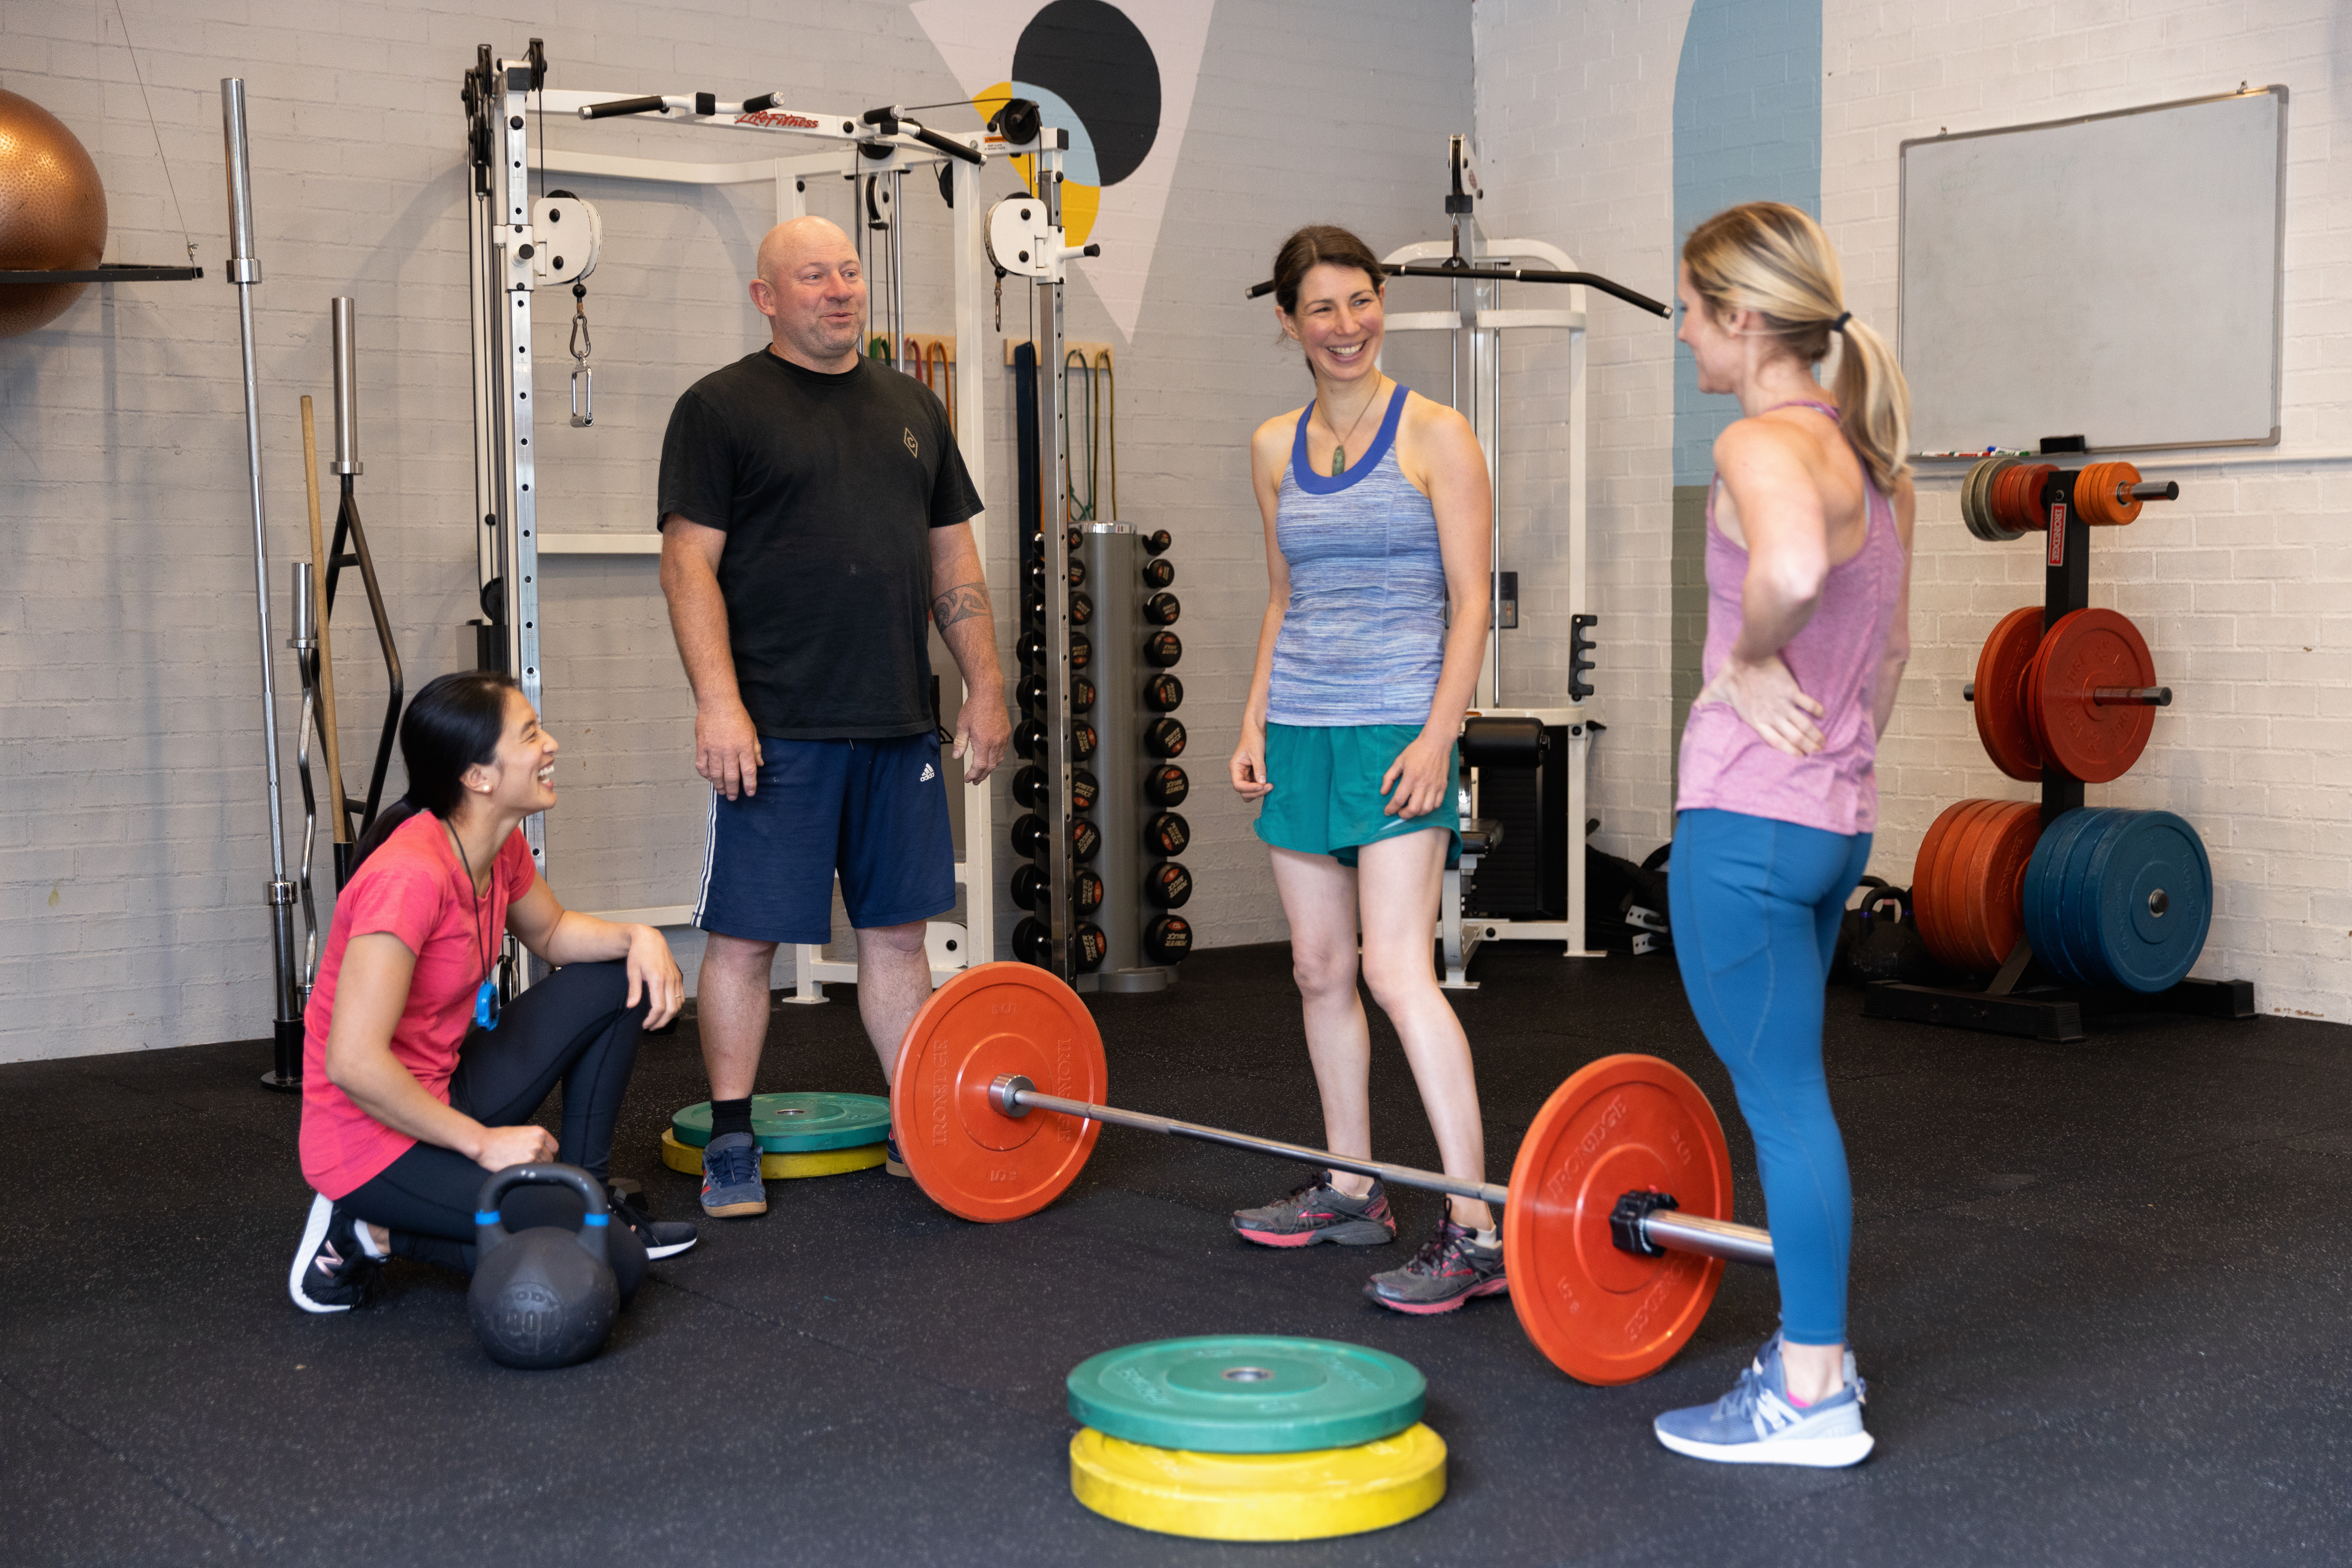 Small group classes for all Levels of Fitness